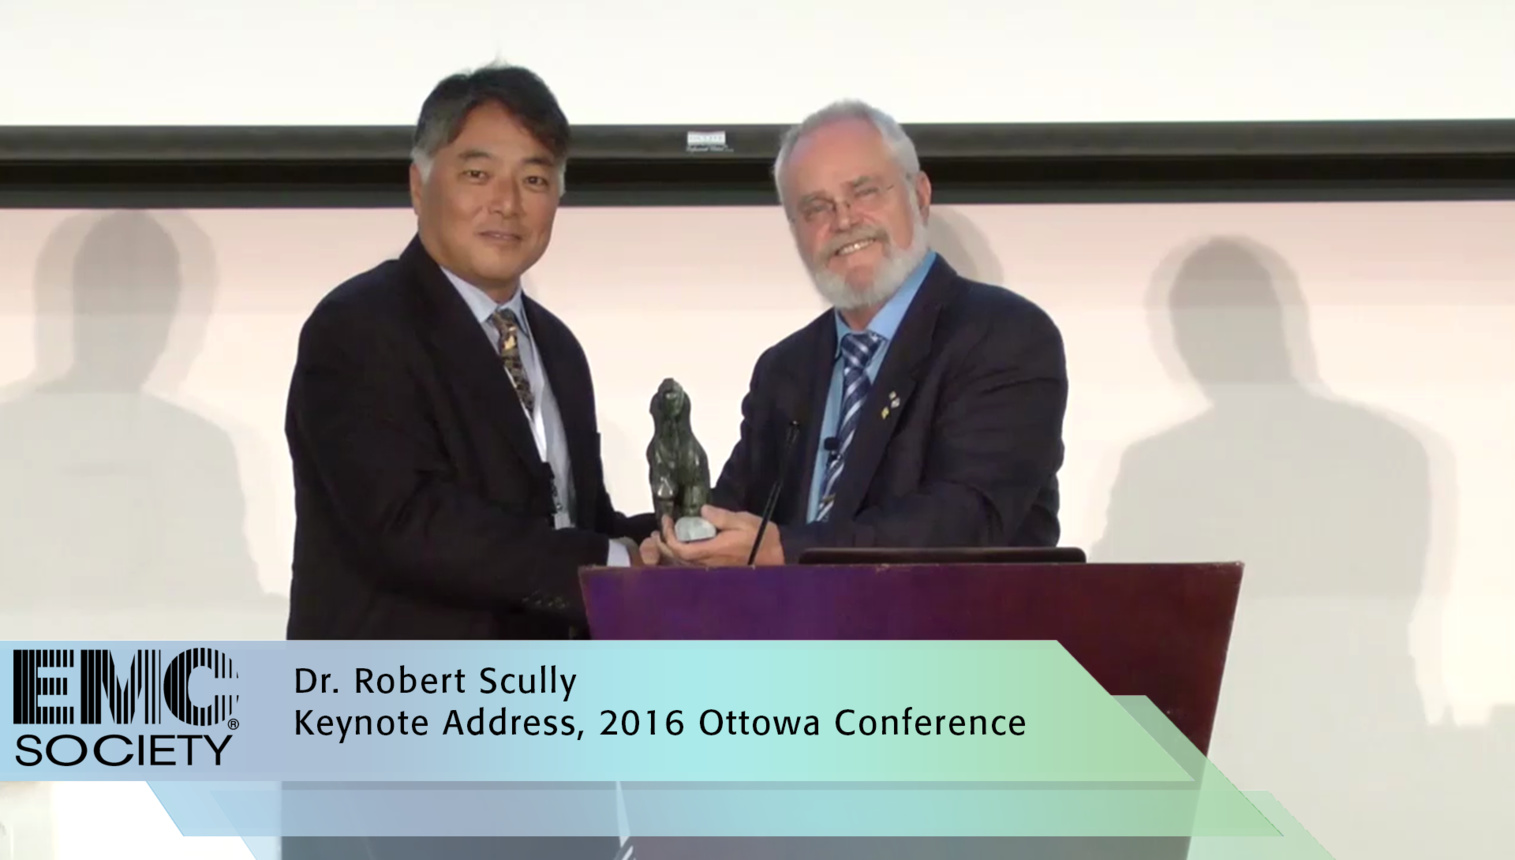 Keynote Address Dr. Robert Scully - EMC 2016